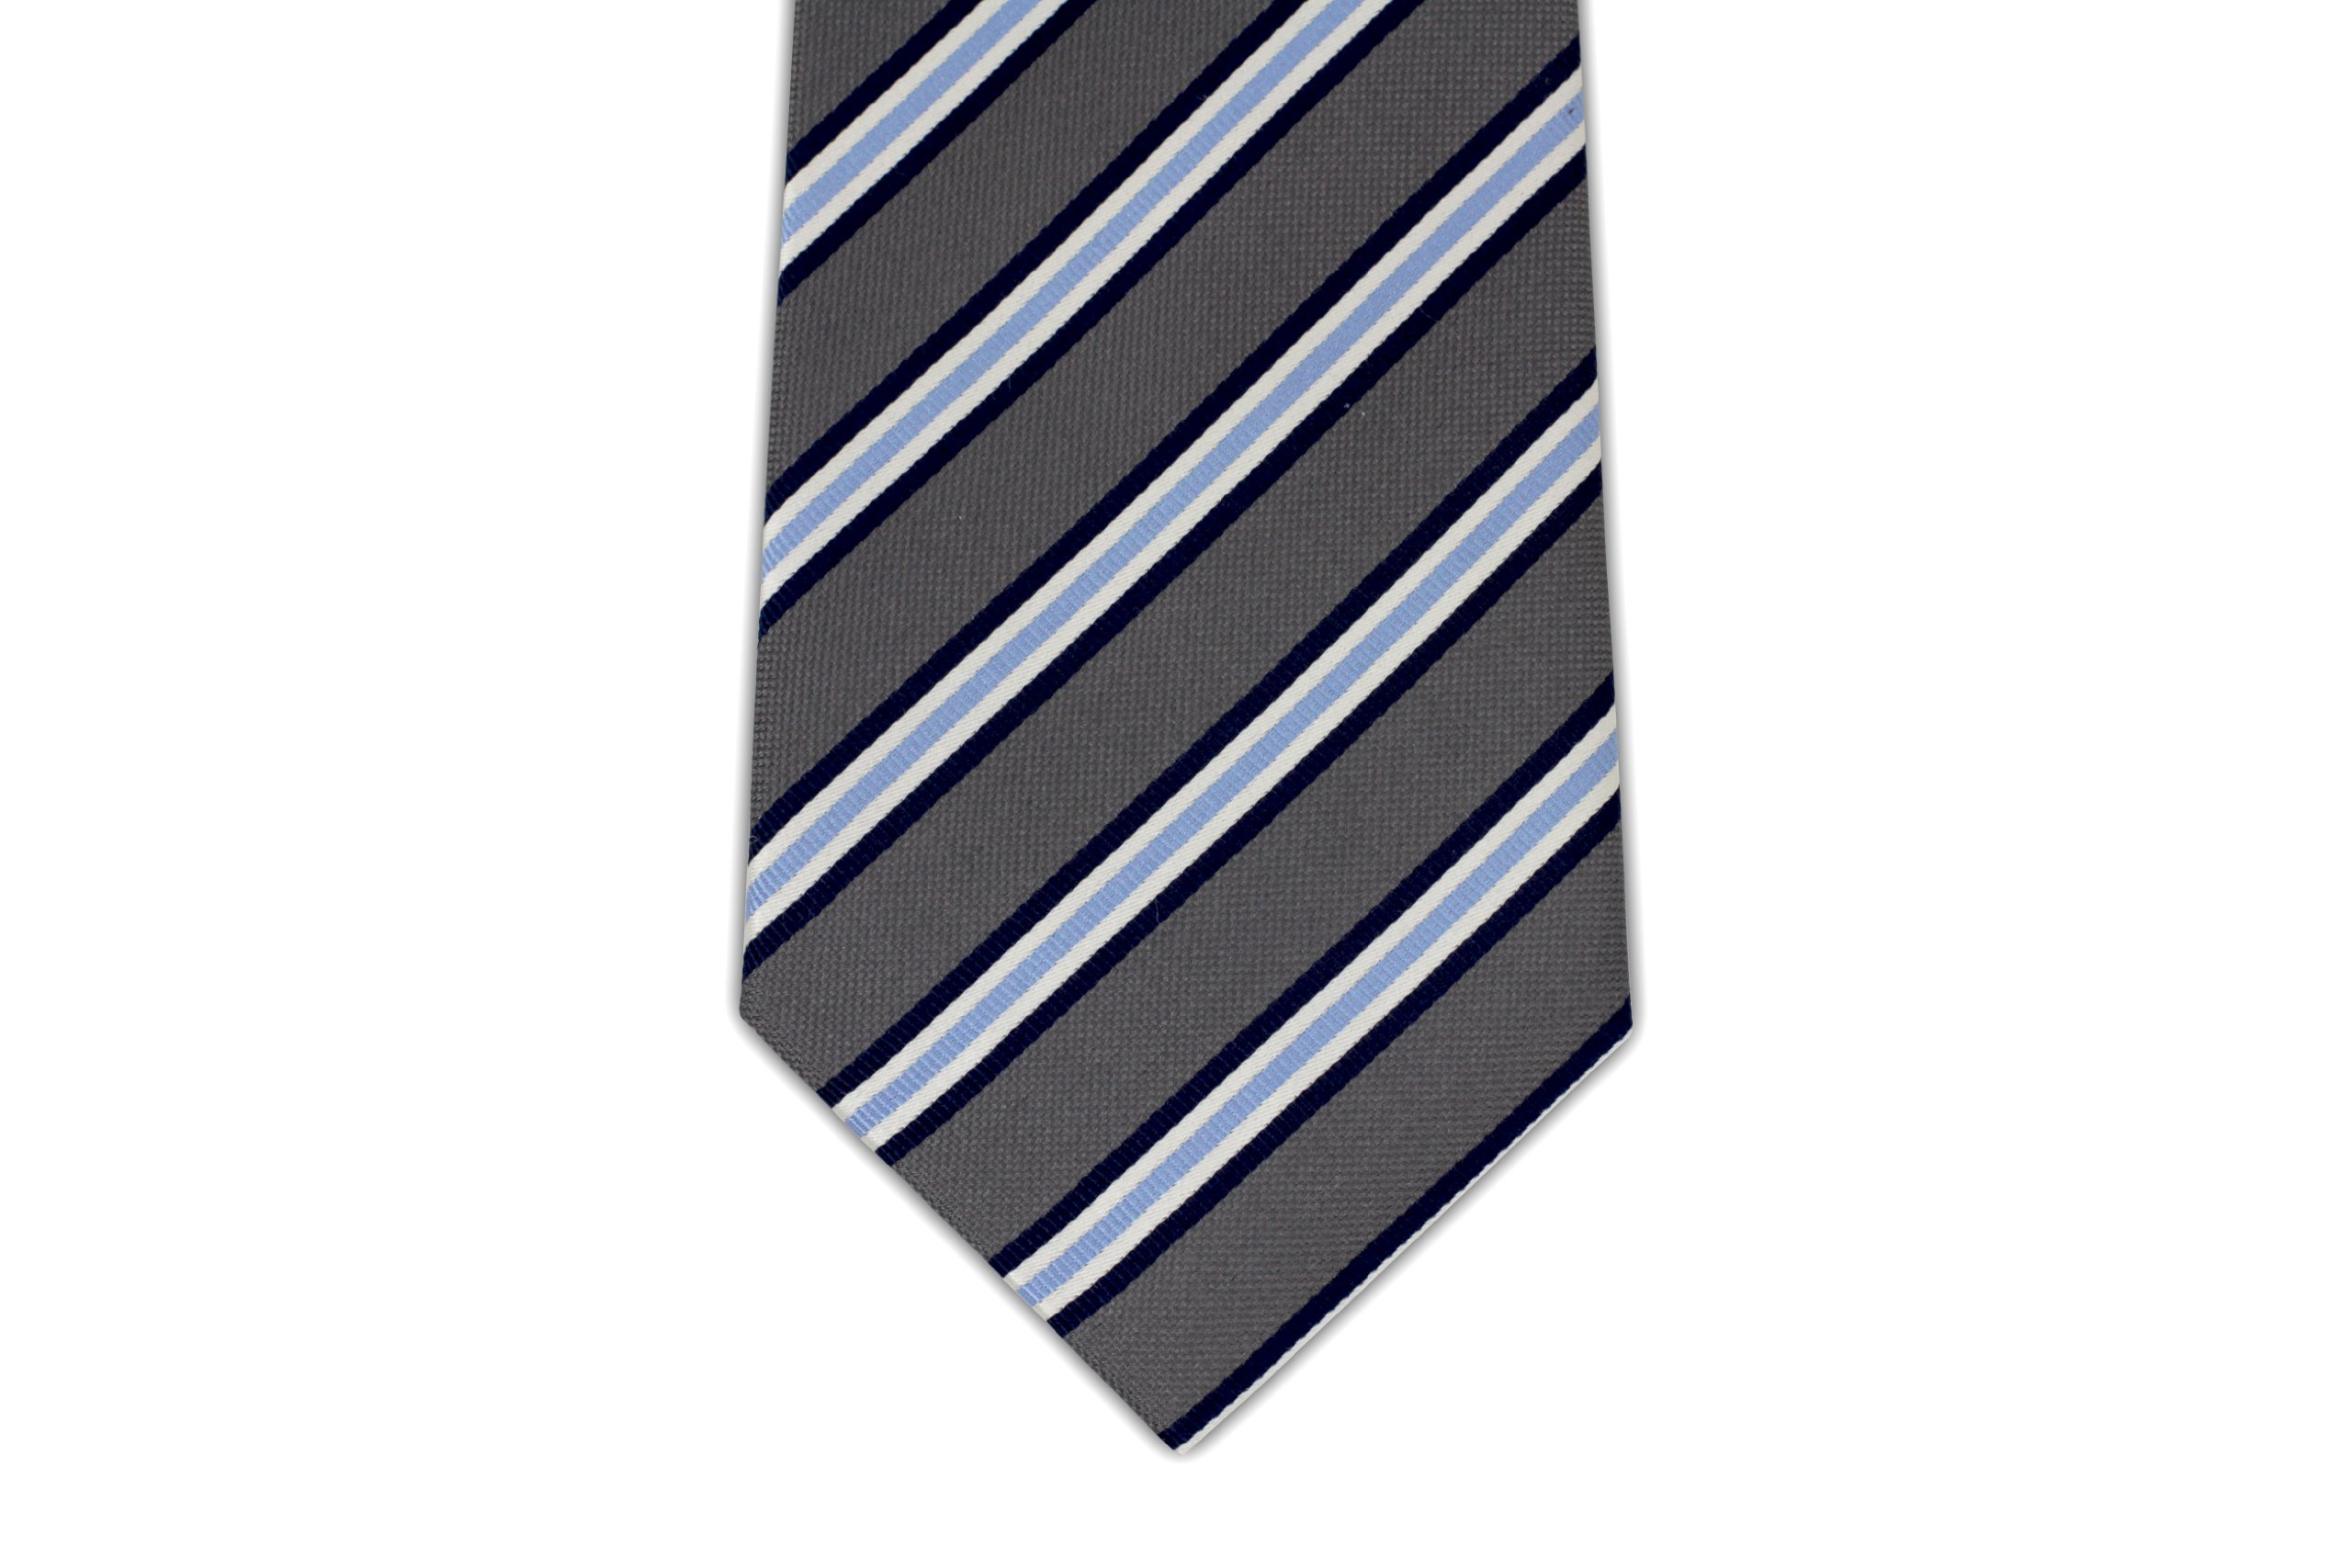 Extra Long Gray and Blue Striped Silk Tie by Longtiestore (Image #3)